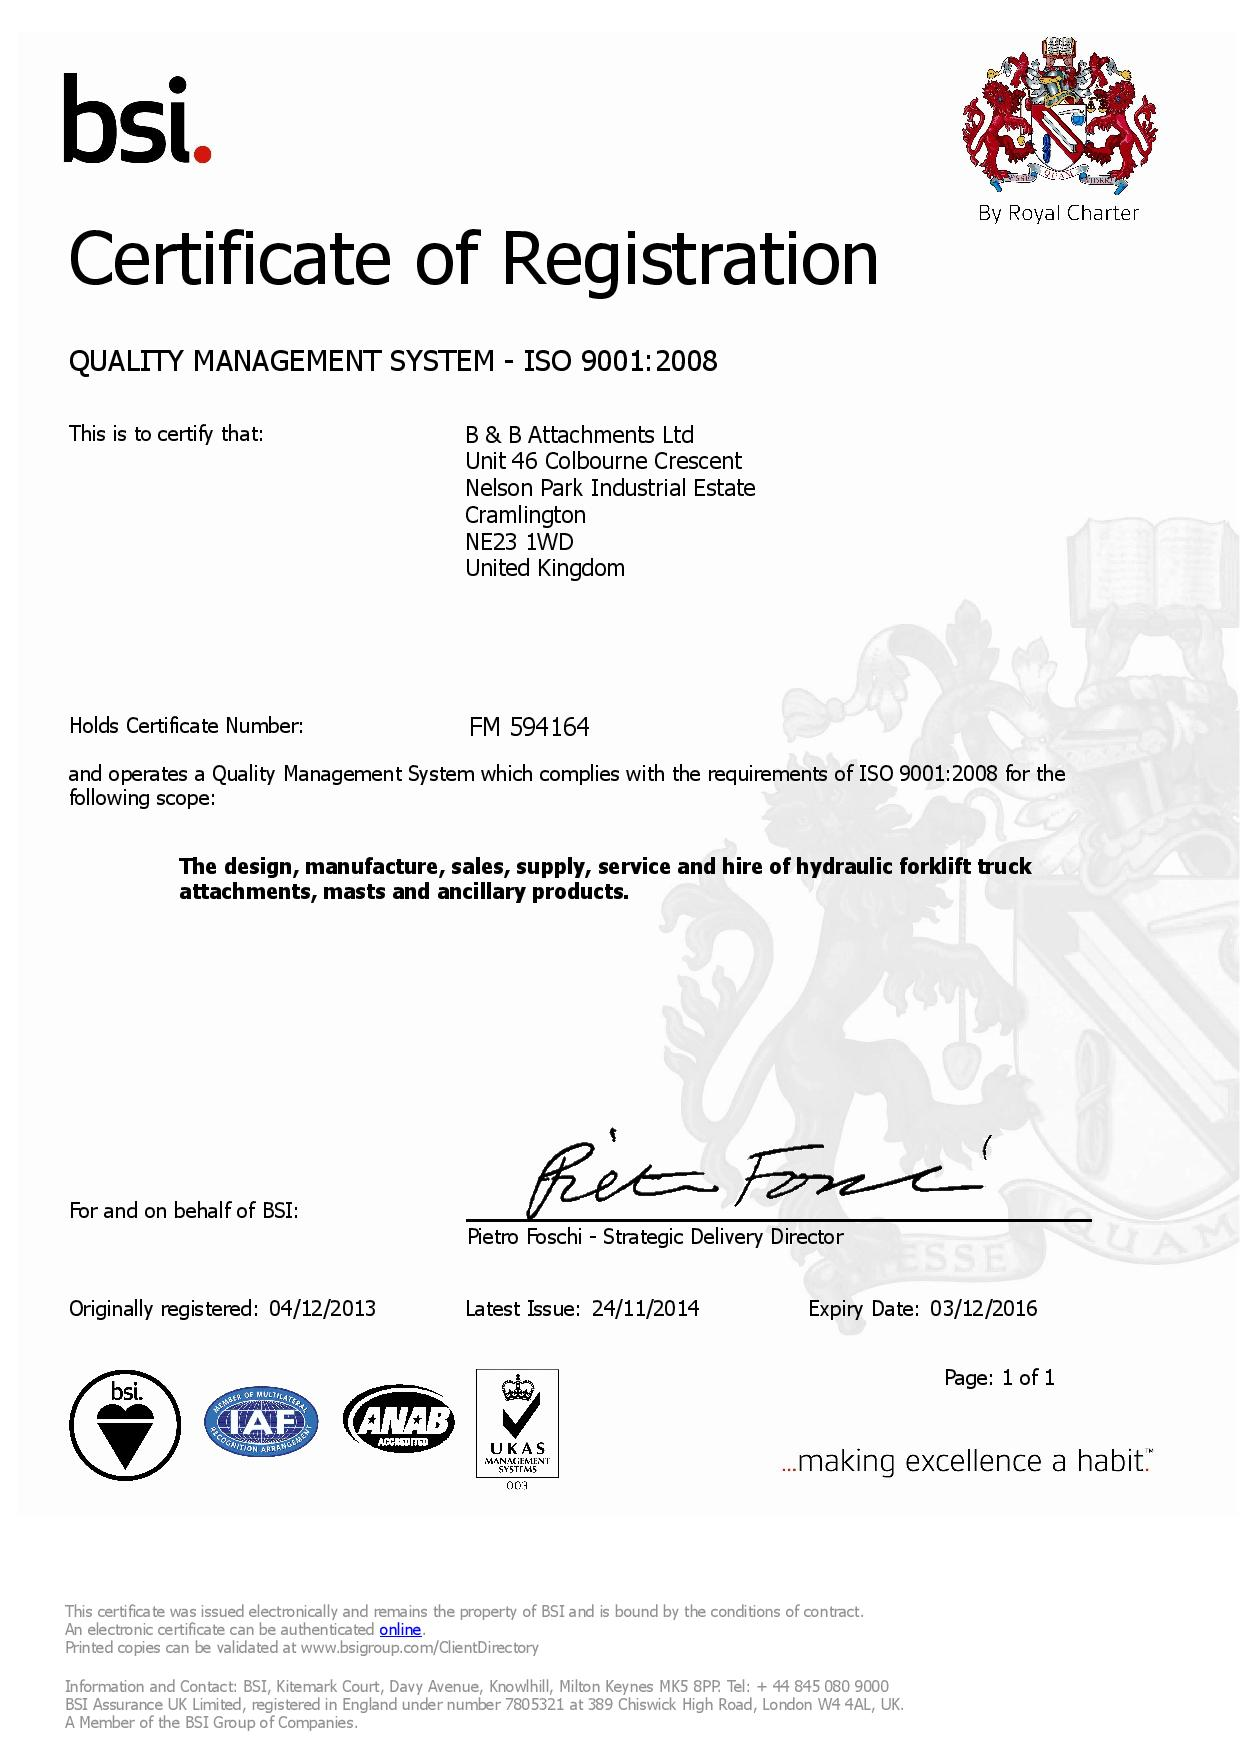 B&B Attachments successfully certified according to ISO 9001:2008